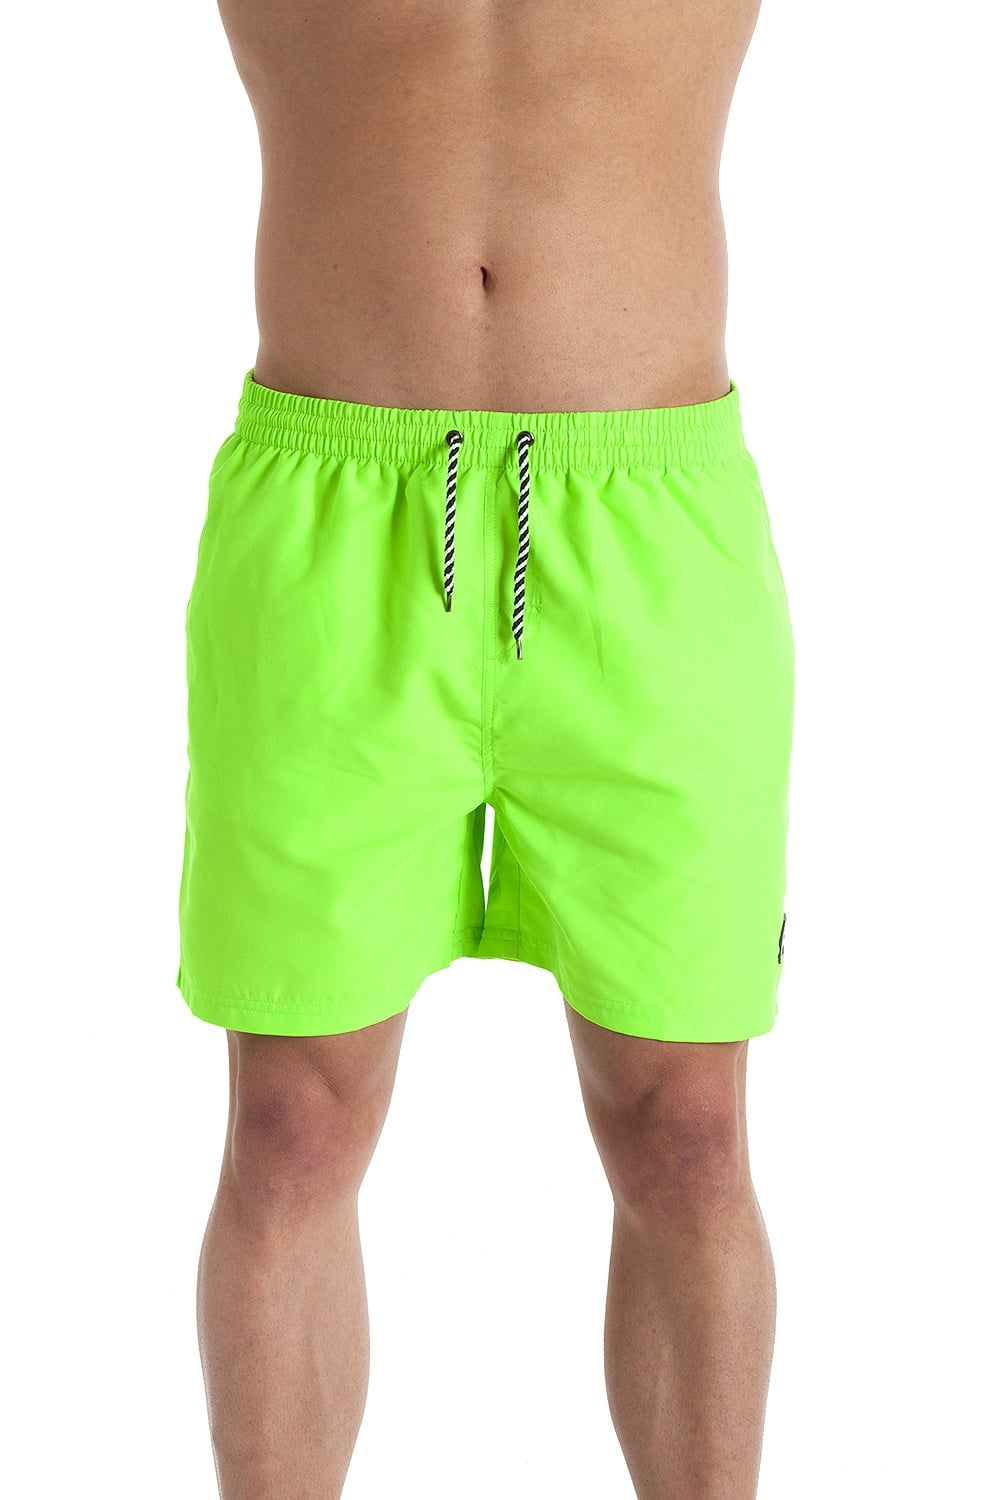 32a68977fb INDIAN AFFAIRS Mens Neon Green Swimming Shorts